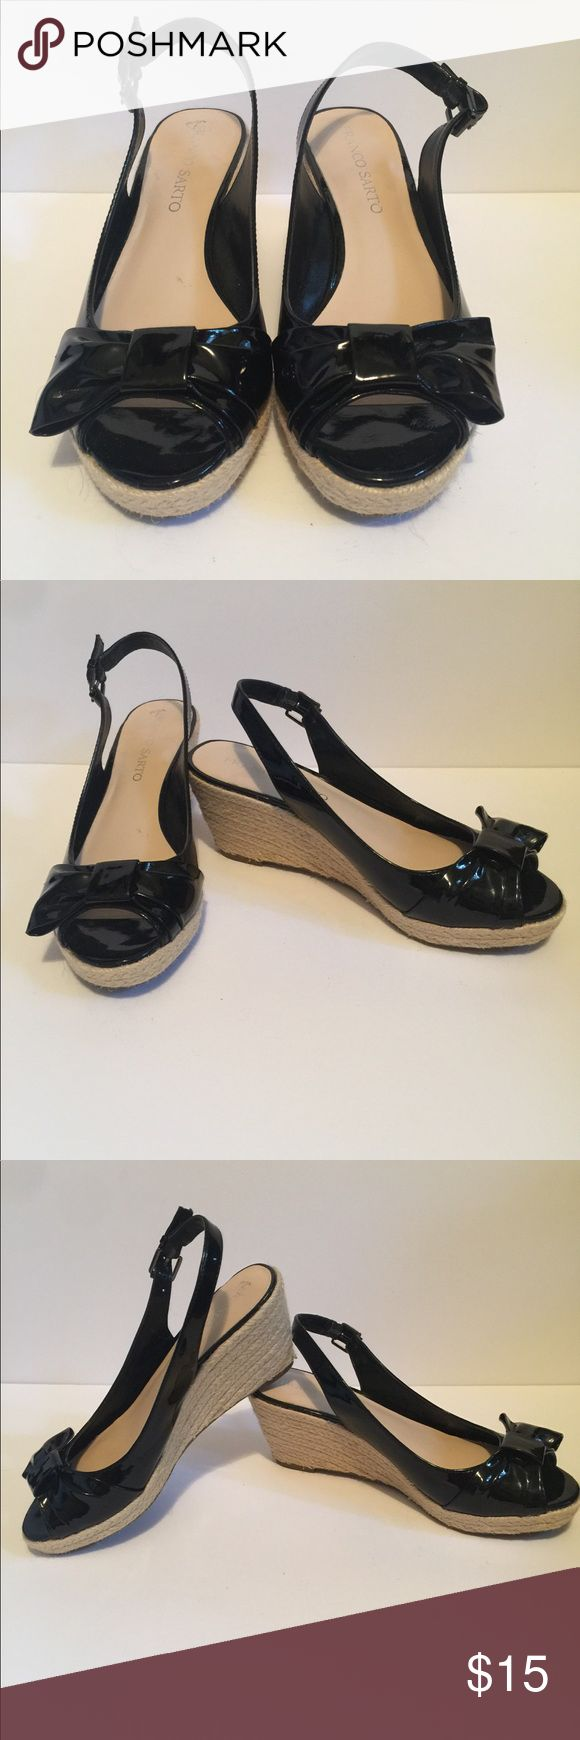 """Black Franco Sarto Wedges Super cute, fun and comfy! These Franco Sarto """"Chart"""" wedges were only worn once, like New condition, great deal for practically new sandals. They have a half cute bow on the front and peep toe to show off your pedicure! The wedge is 2.5 inches with a 3/4 platform in front. Size 7.5. True to size. Franco Sarto Shoes Sandals"""